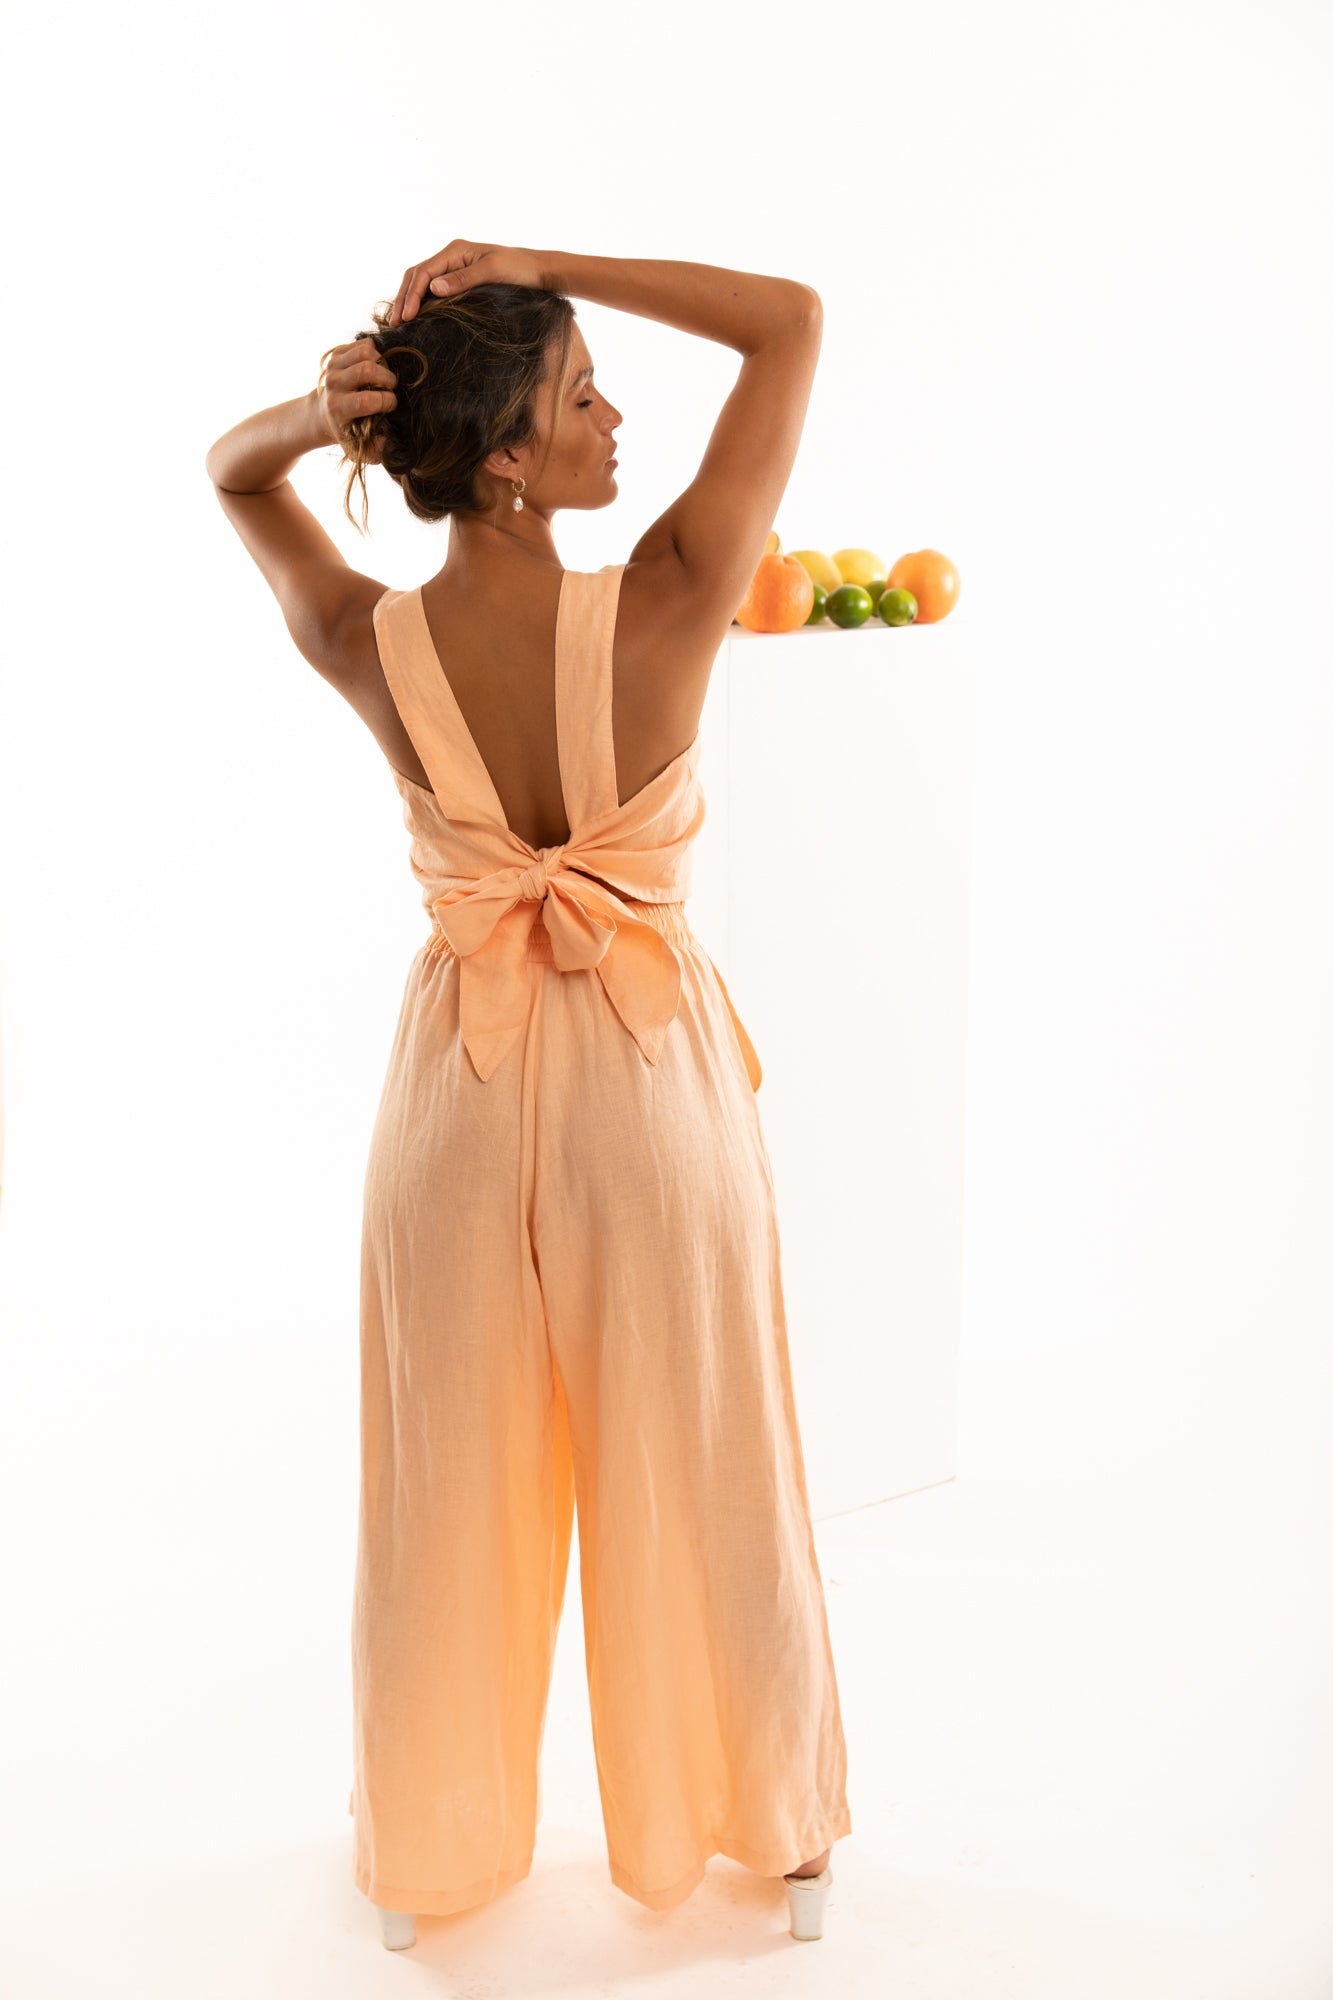 The Zephyr Linen Pants in Grapefruit